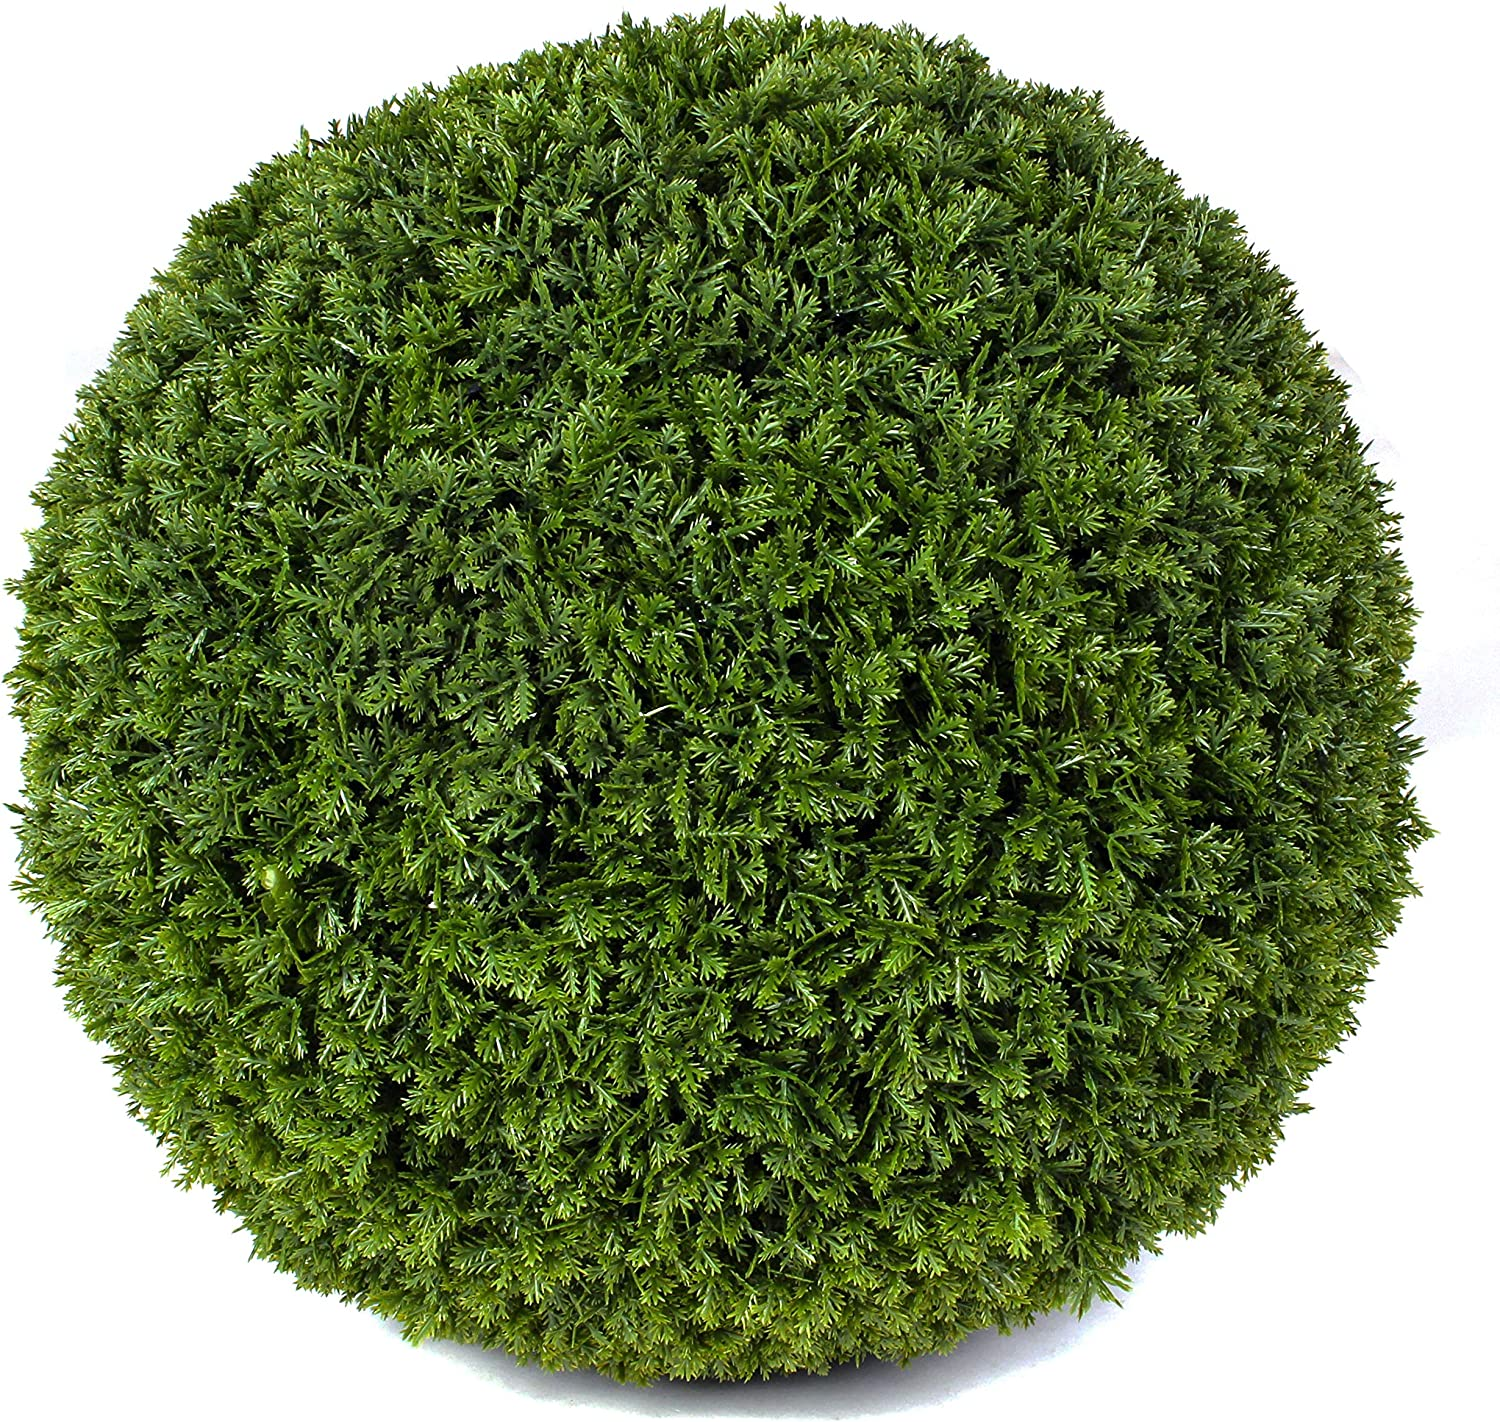 """3rd Street Inn Cypress Topiary Ball - 15"""" Artificial Topiary Plant - Wedding Decor - Indoor/Outdoor Artificial Plant Ball - Topiary Tree Substitute (2, Cypress)"""